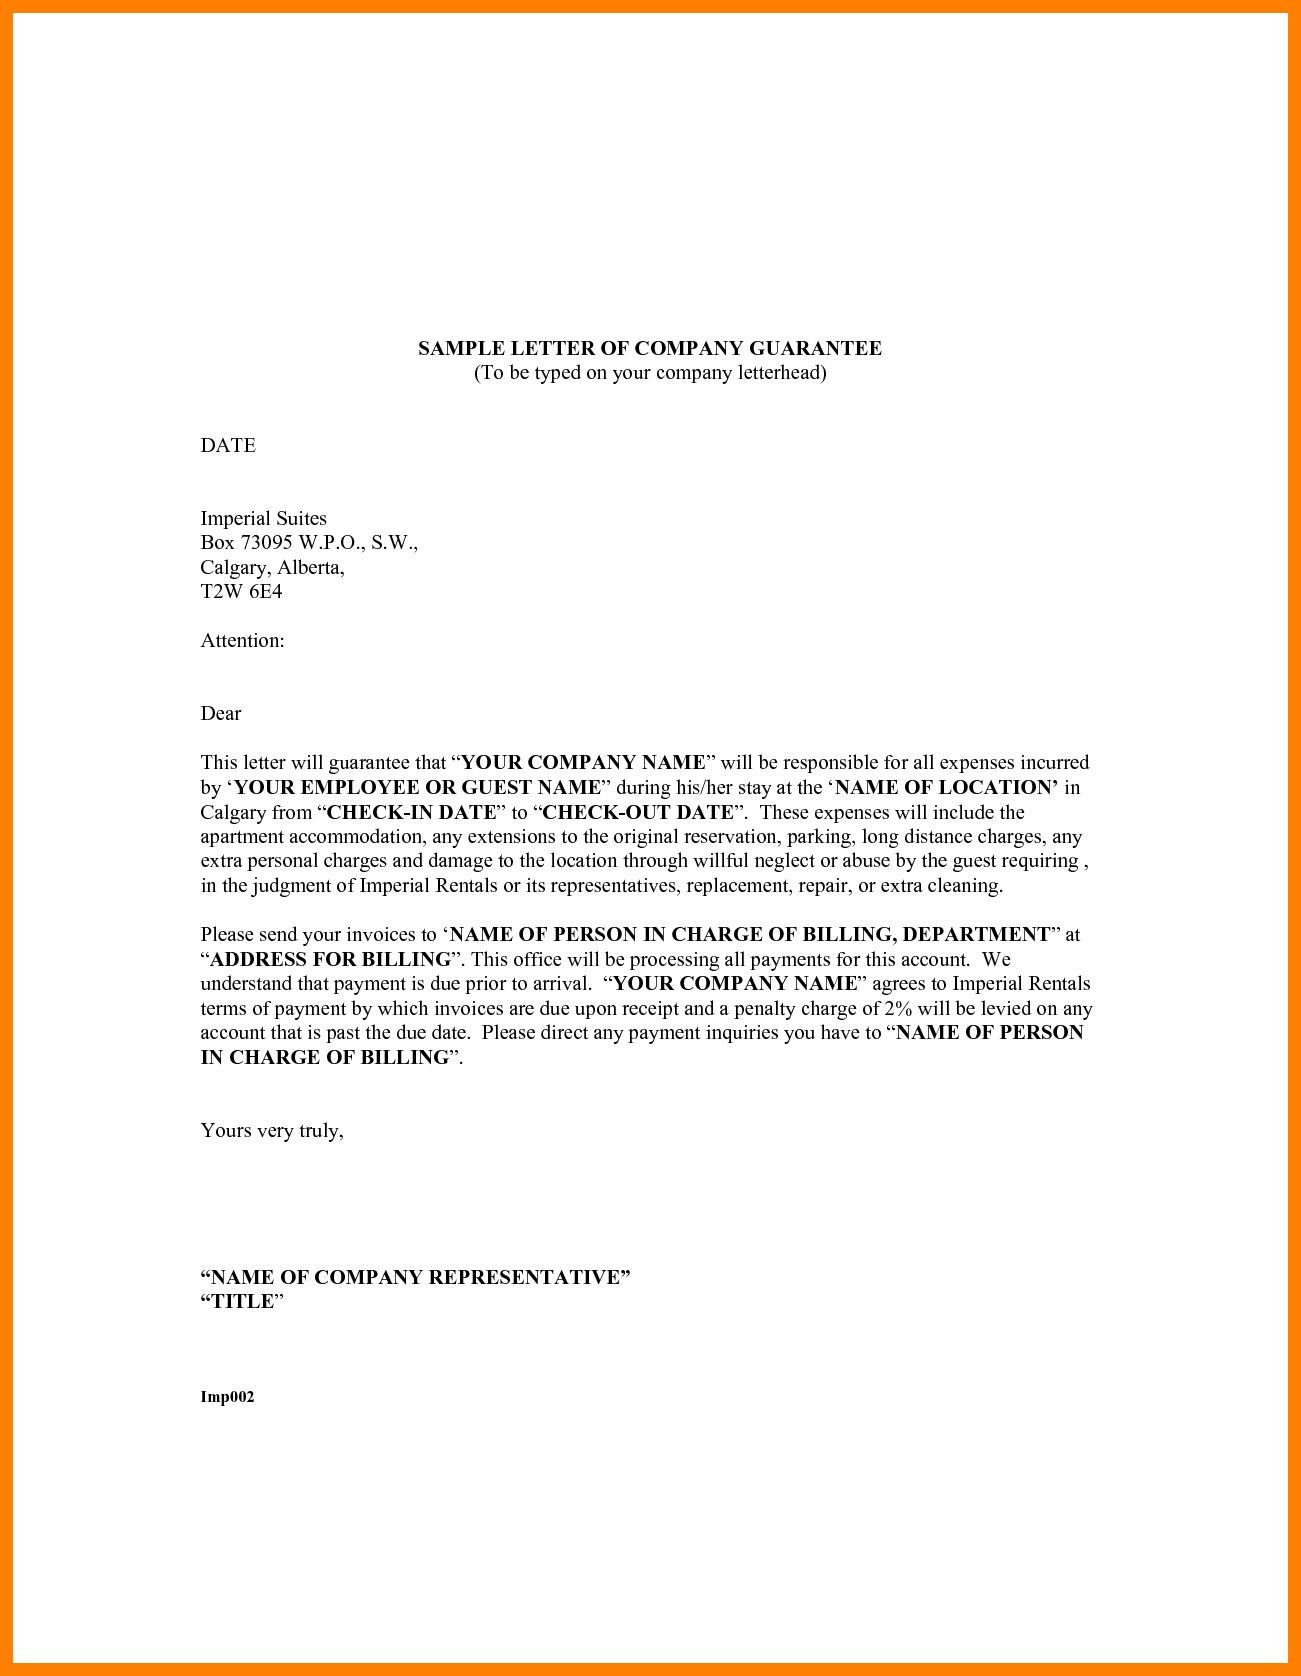 Guarantee Letter Template Managementoncall For Letter Of Guarantee Template 10 Professional Templates Ideas Letter Template Lettering Professional Templates